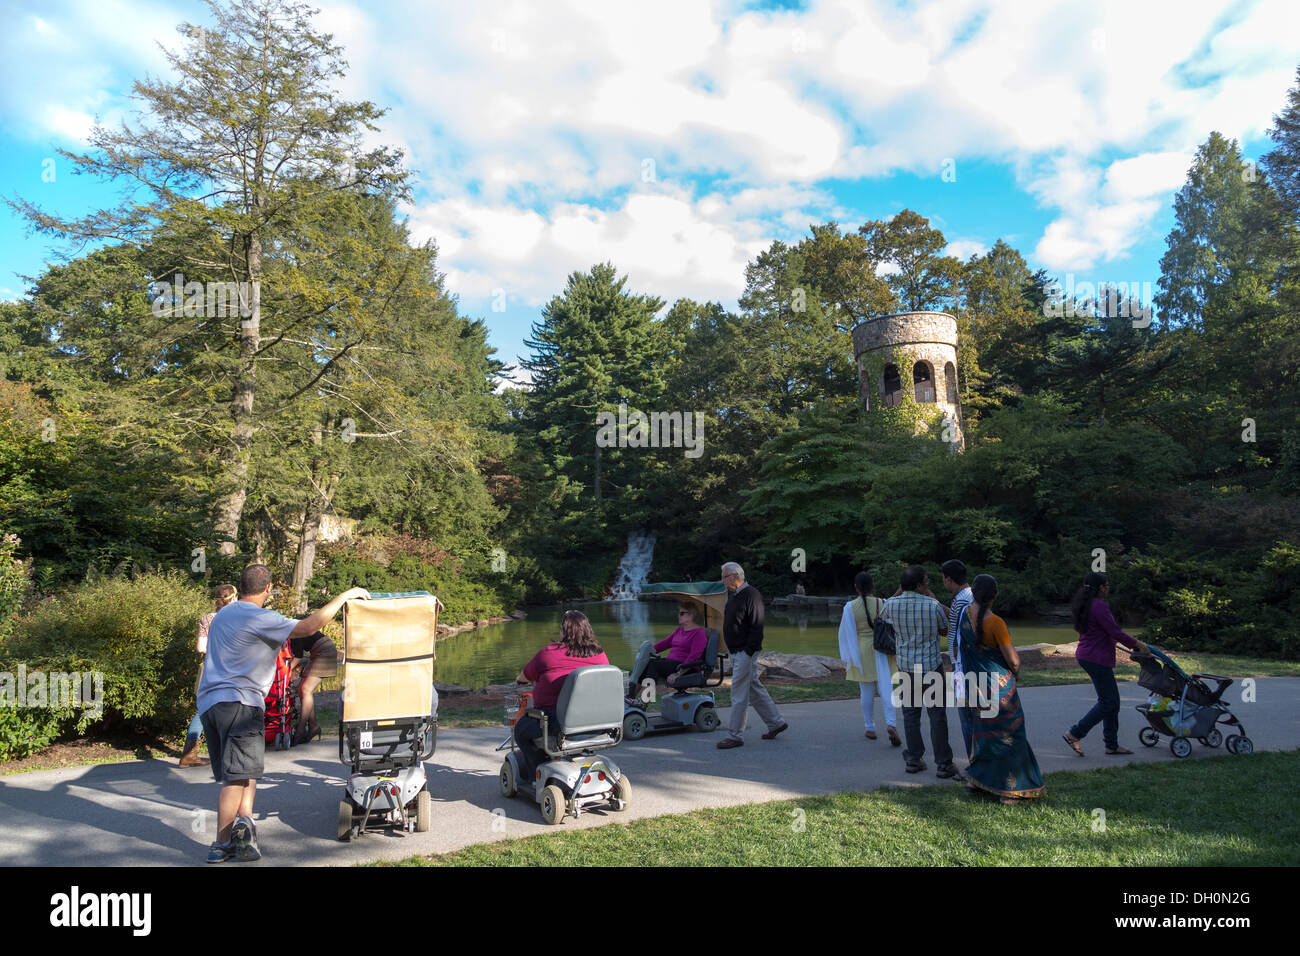 disabled persons in electric wheelchairs at Longwood Gardens, Kennett Square, Pennsylvania, USA - Stock Image